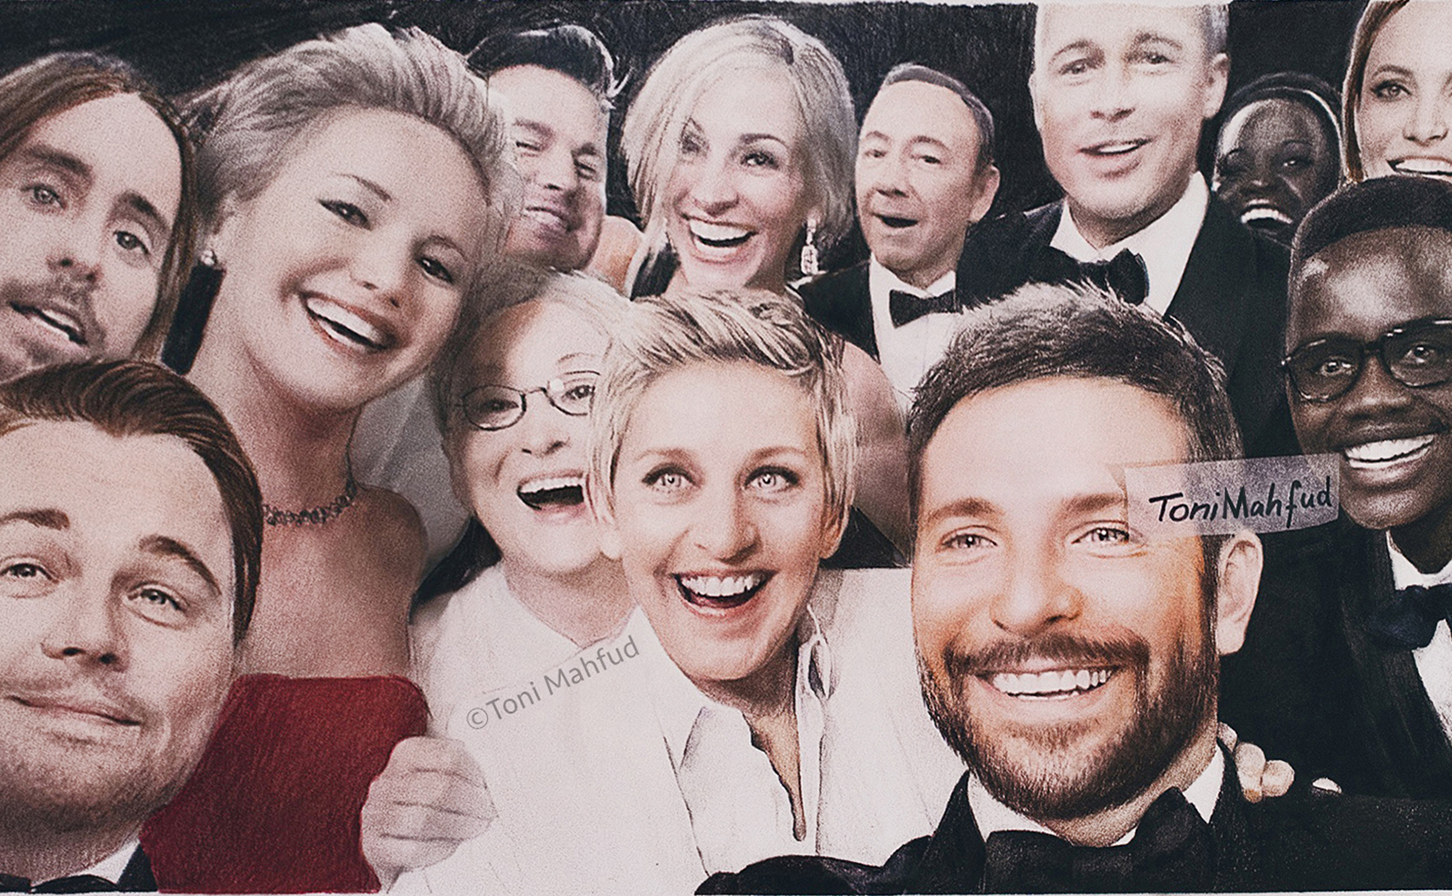 OSCAR_SELFIE_ELLEN_ARTWORK_DRAWING_TONI_MAHFUD_WEB_01 Kopie